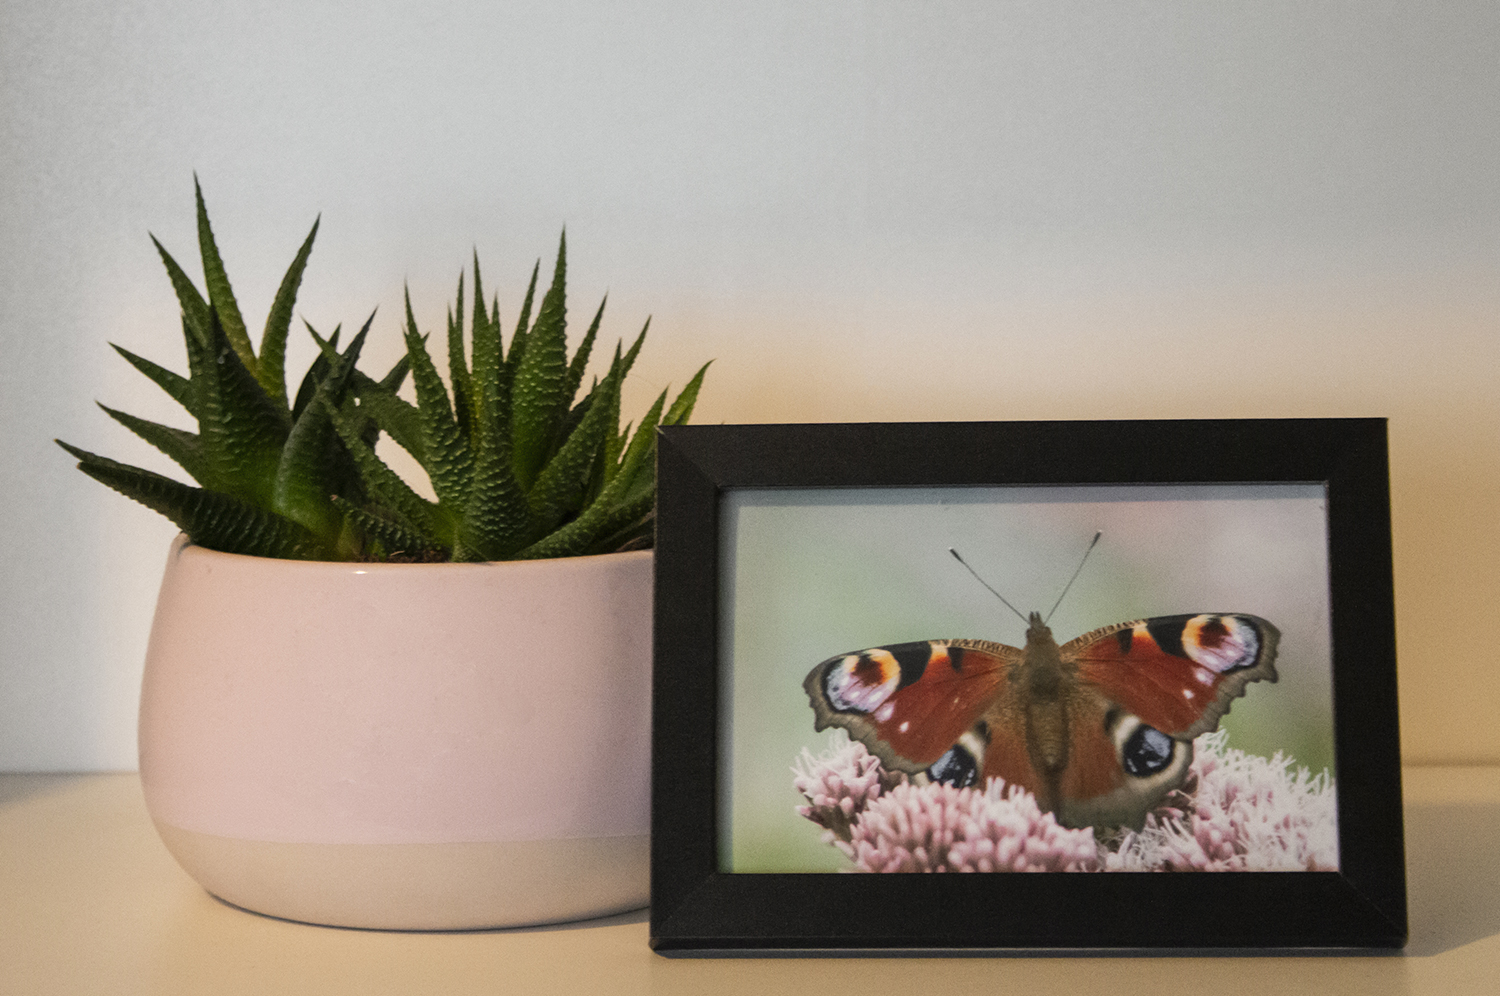 Small peacock butterfly framed photo